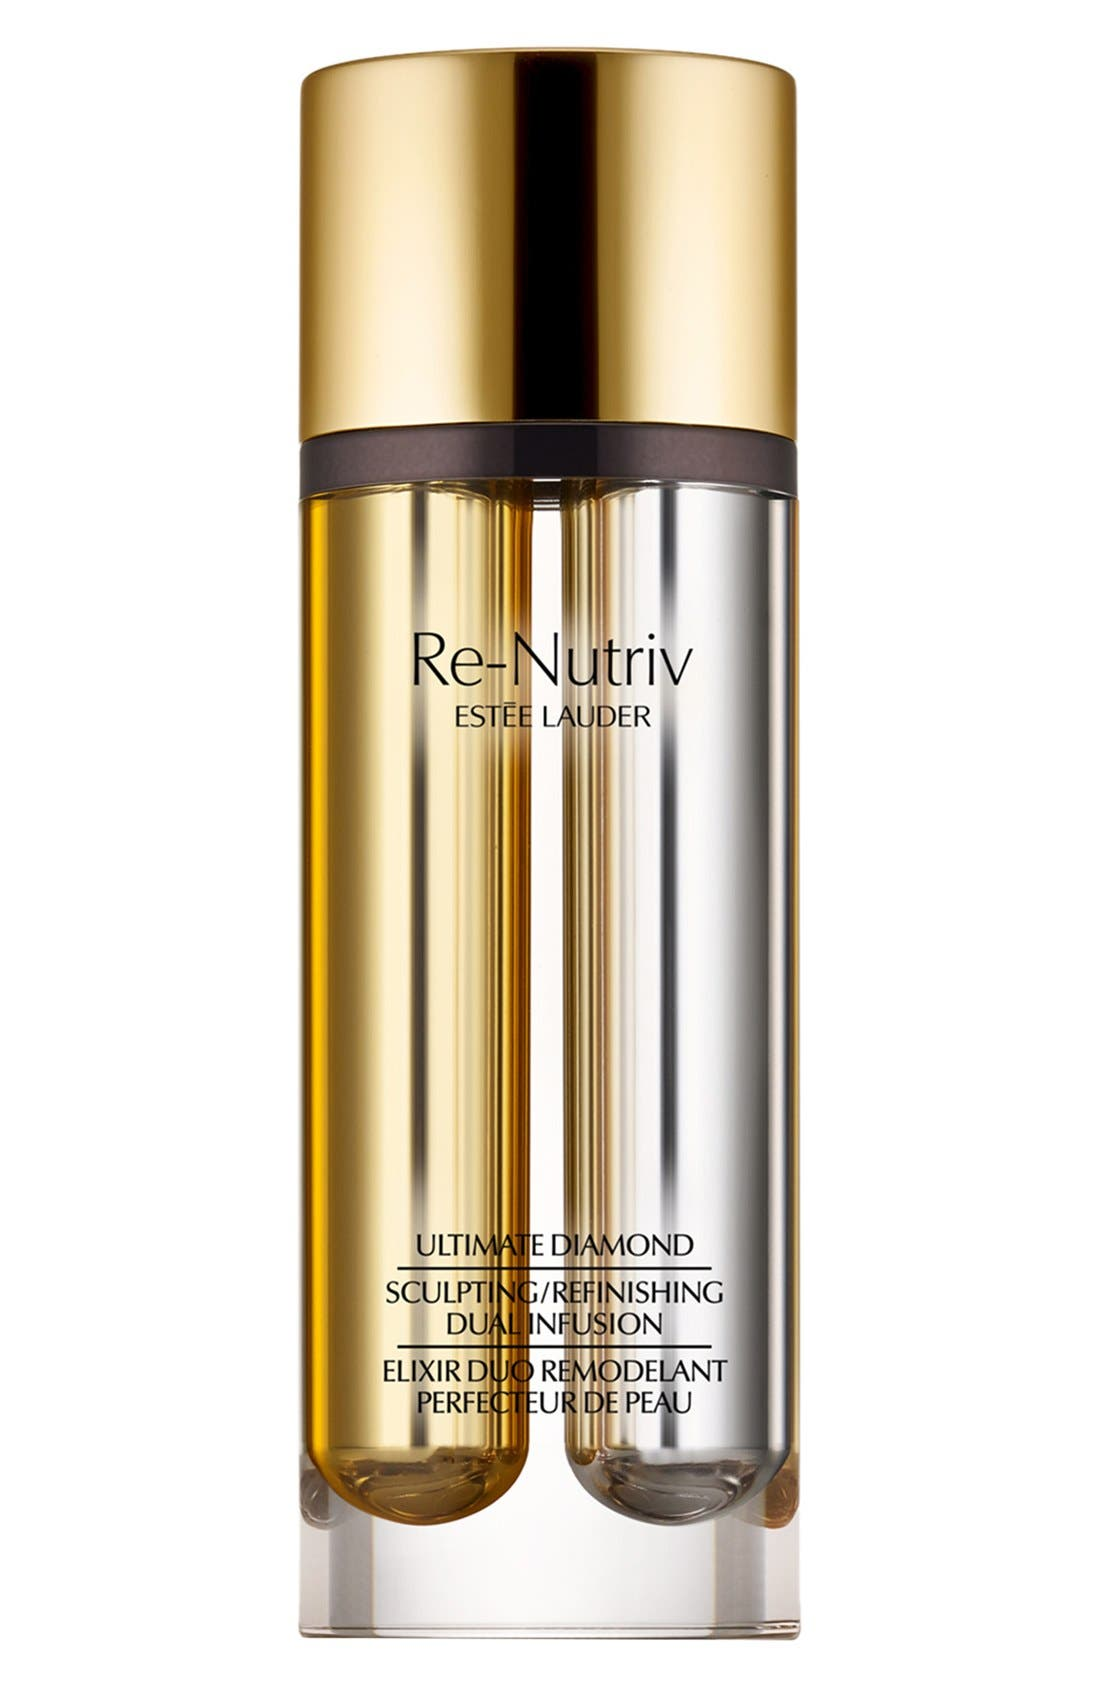 Estée Lauder Re-Nutriv Ultimate Diamond Sculpting/Refinishing Dual Infusion